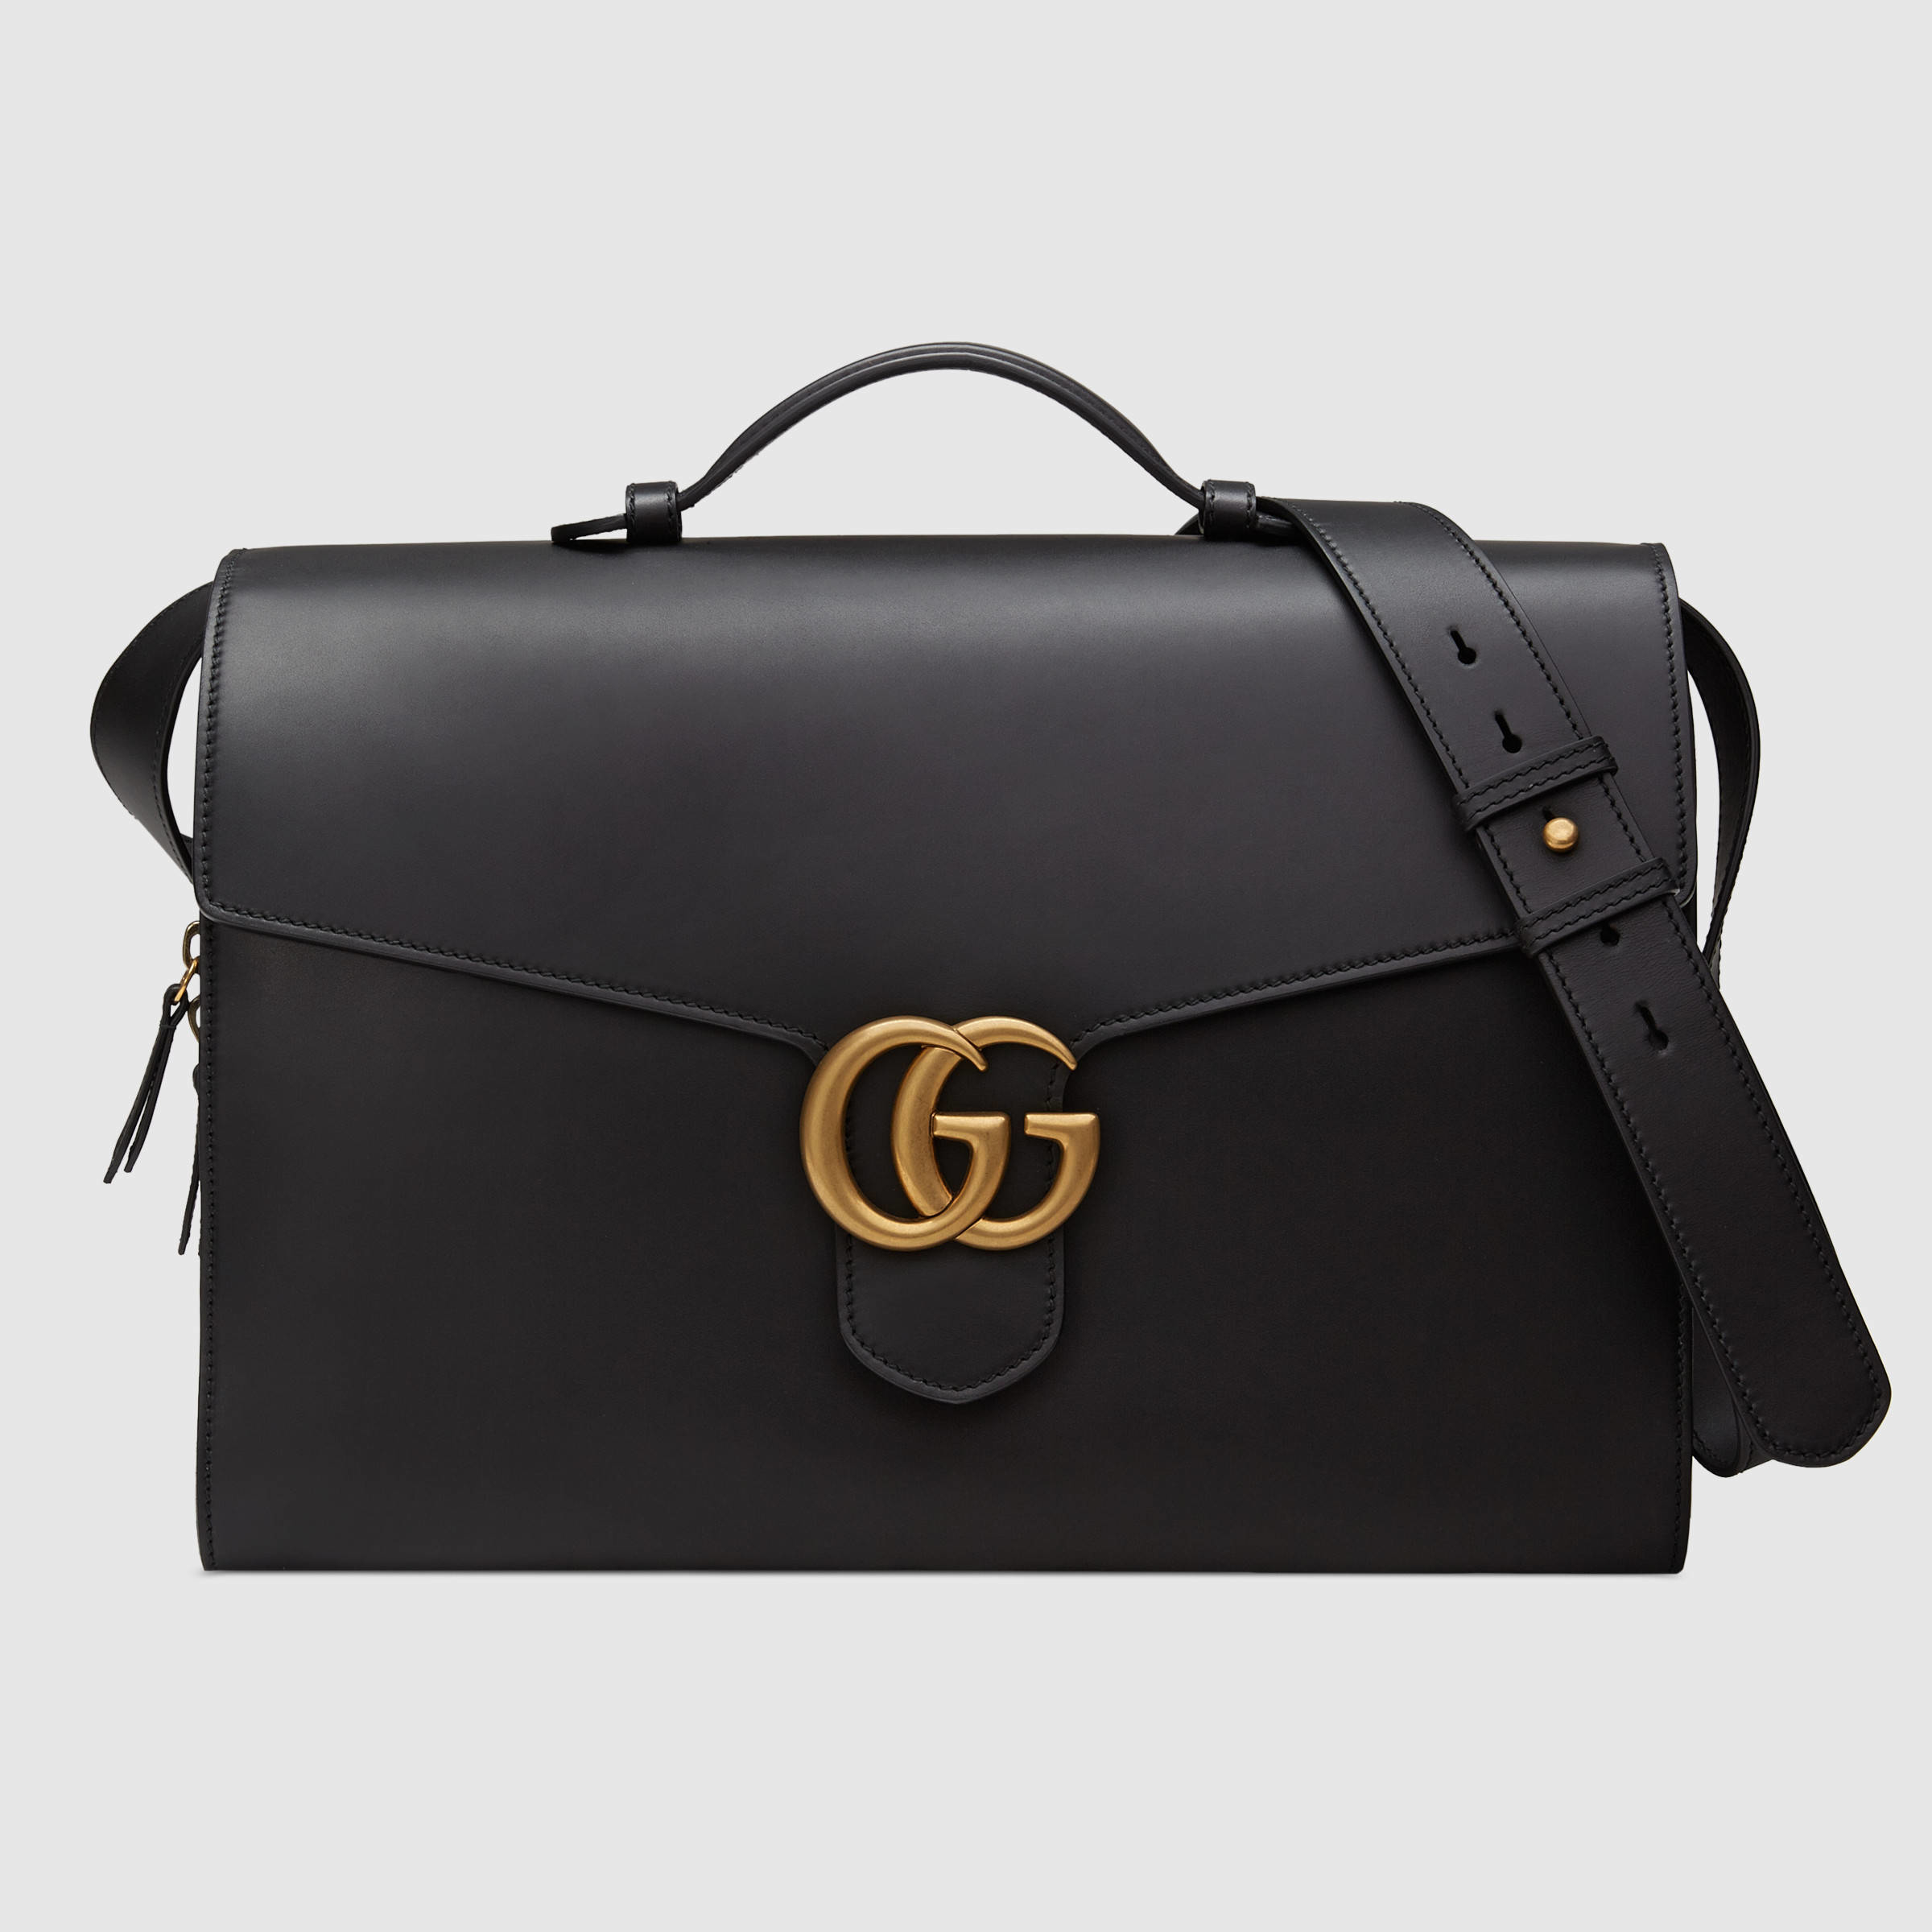 6014364e4693 Gucci GG Marmont Leather Briefcase in Black for Men - Lyst